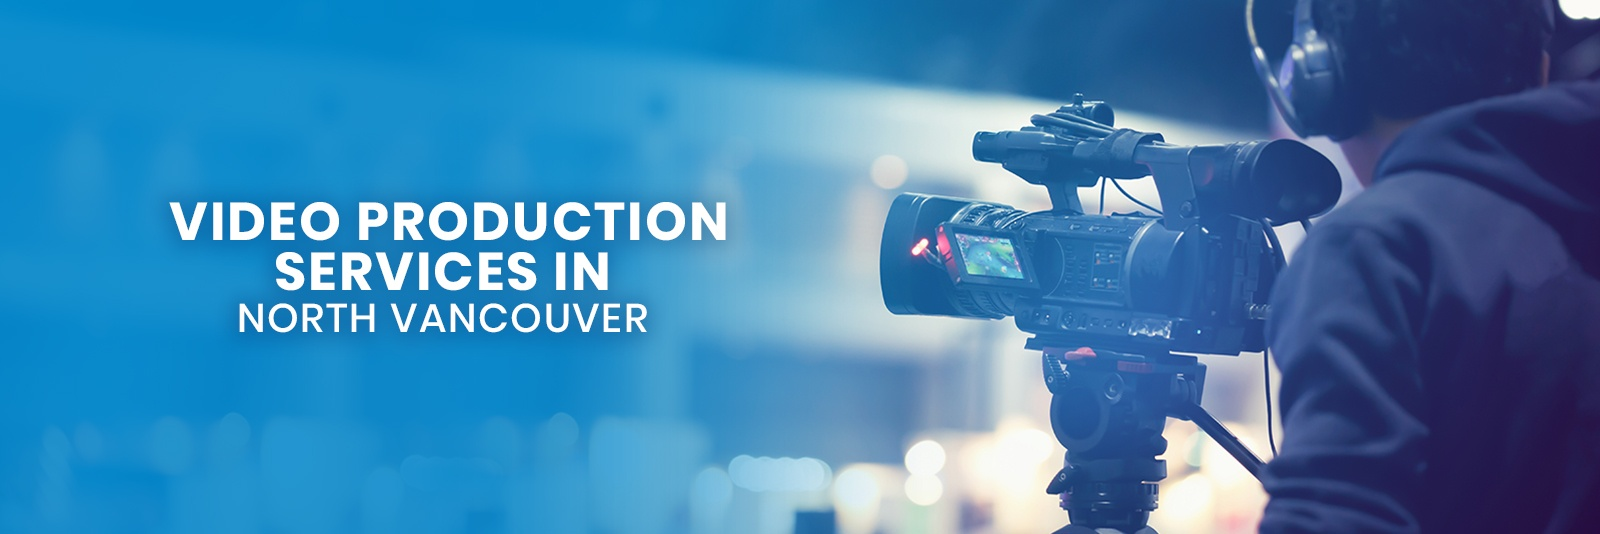 Video Production Services In North Vancouver